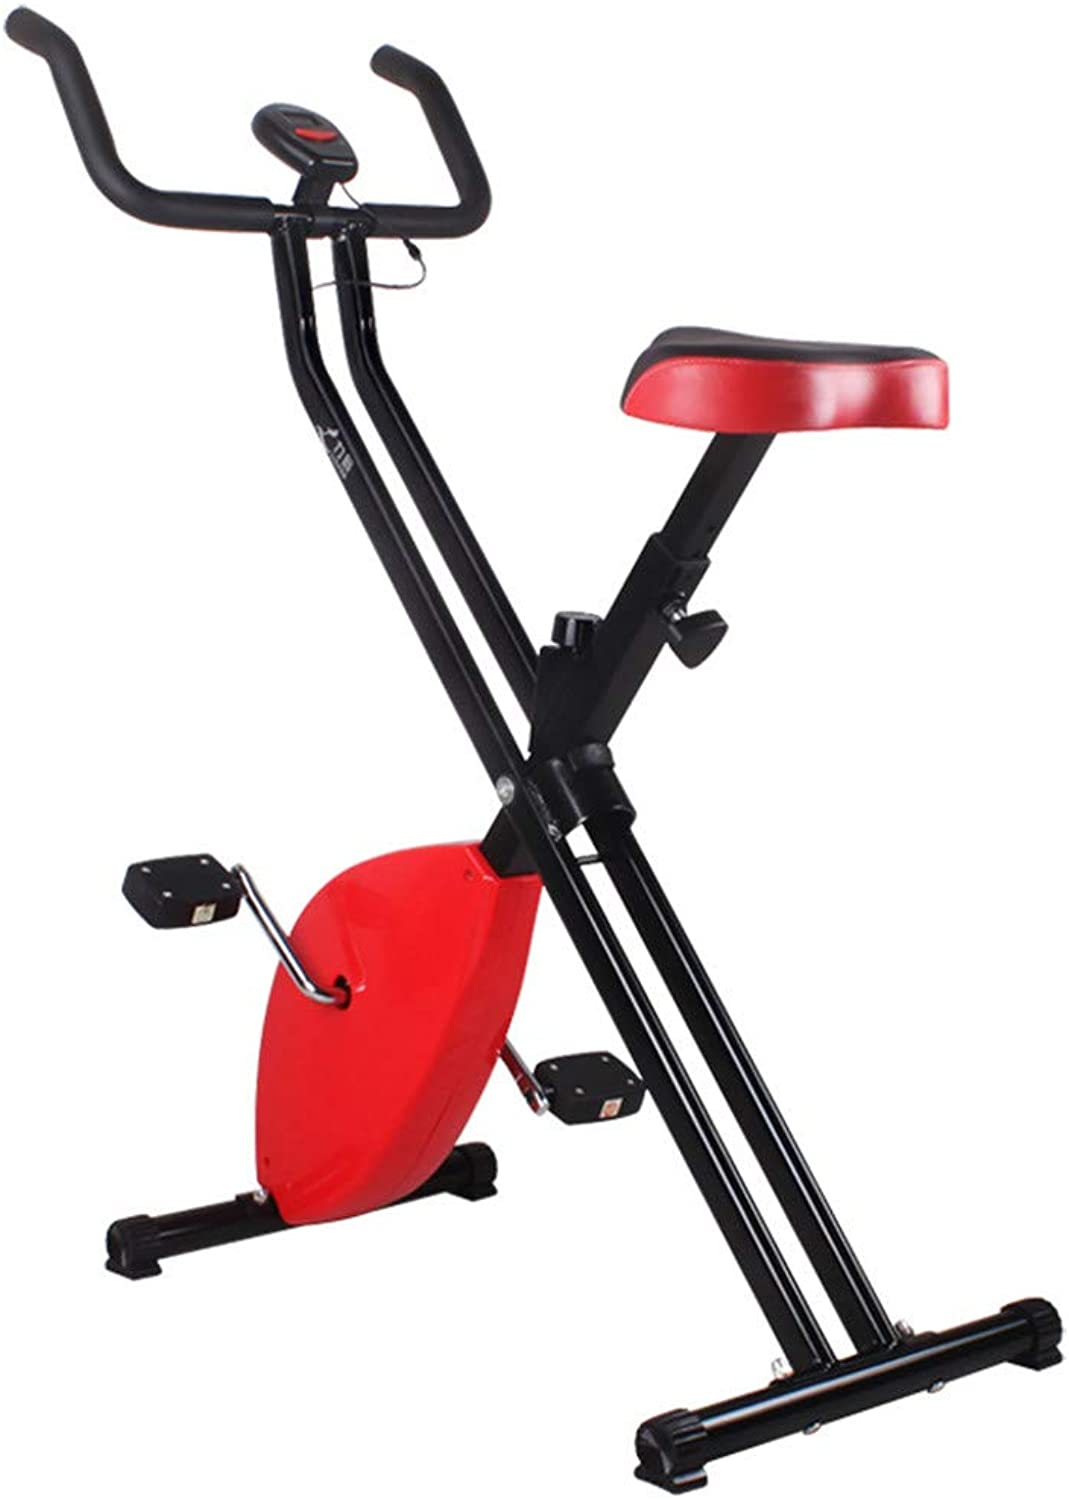 Spinning Bike Trainer Exercise Bicycle Indoor Cycling Bike Cycle Heart Rate Fitness Stationary Exercise Bike with LCD Display for Home Sport Workout